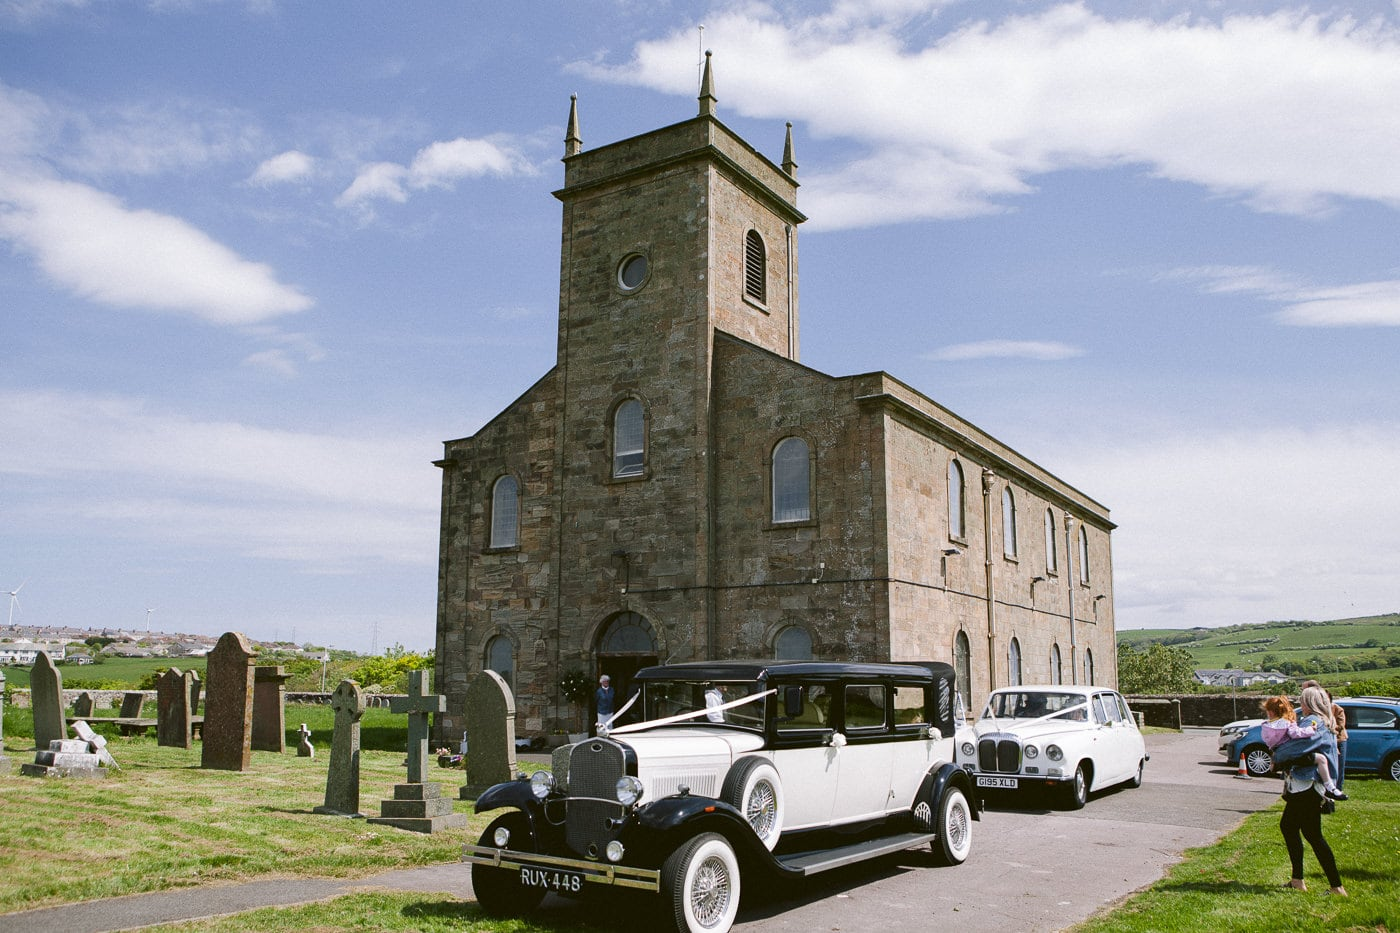 Wedding Cars outside Irton Hall Cumbria on The Big Day in Sunshine Photograph